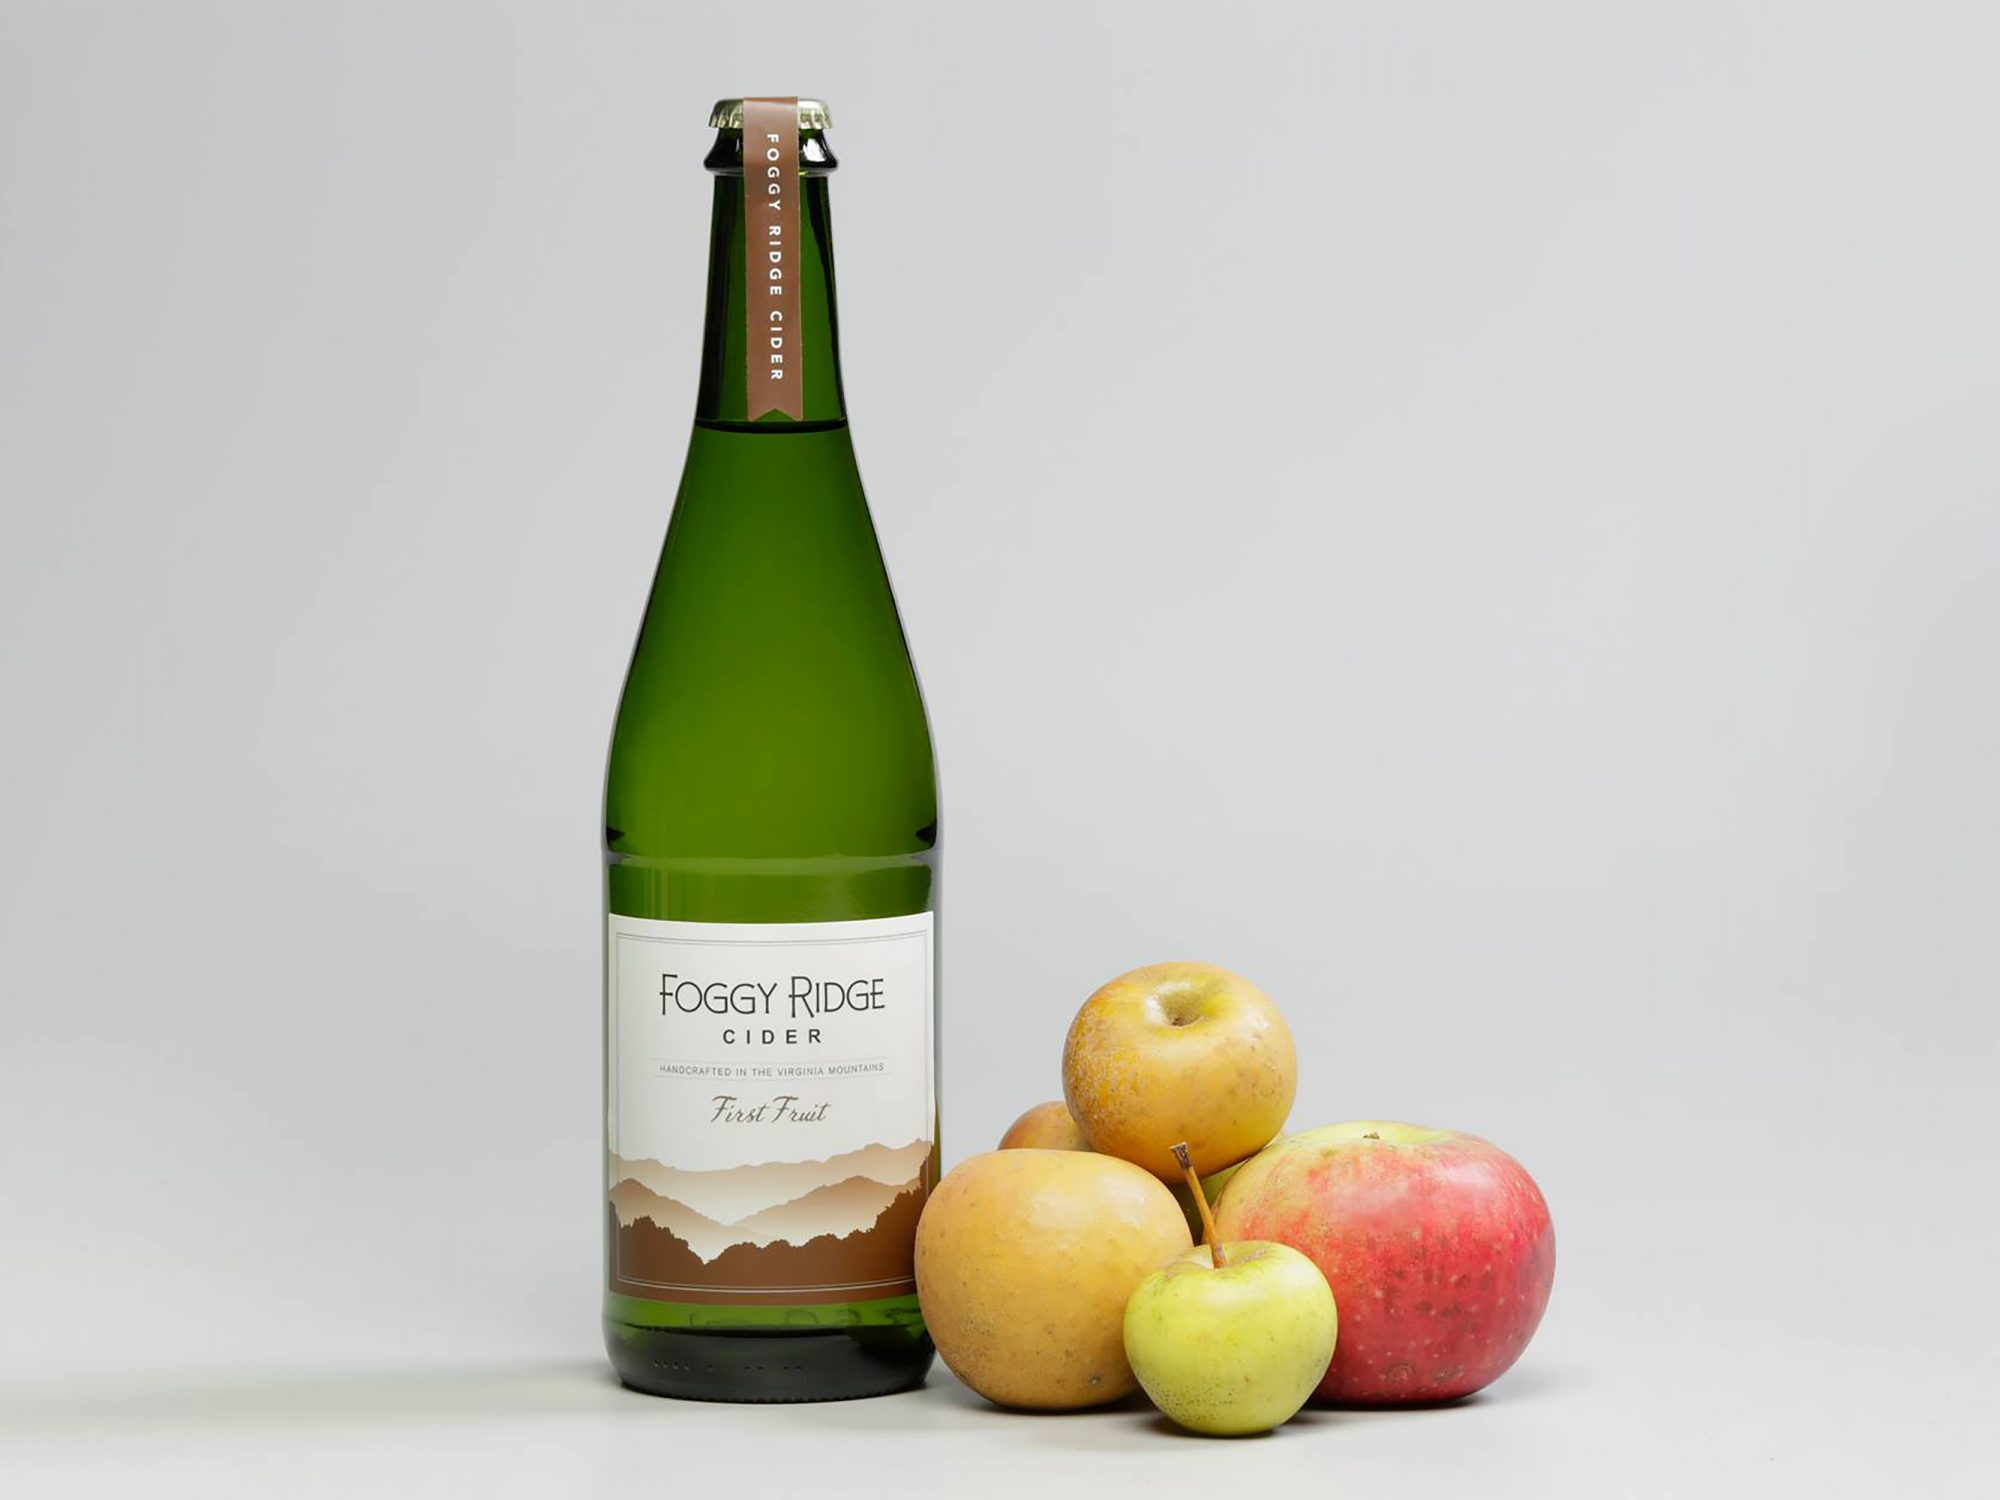 Foggy Ridge Cider First Fruit